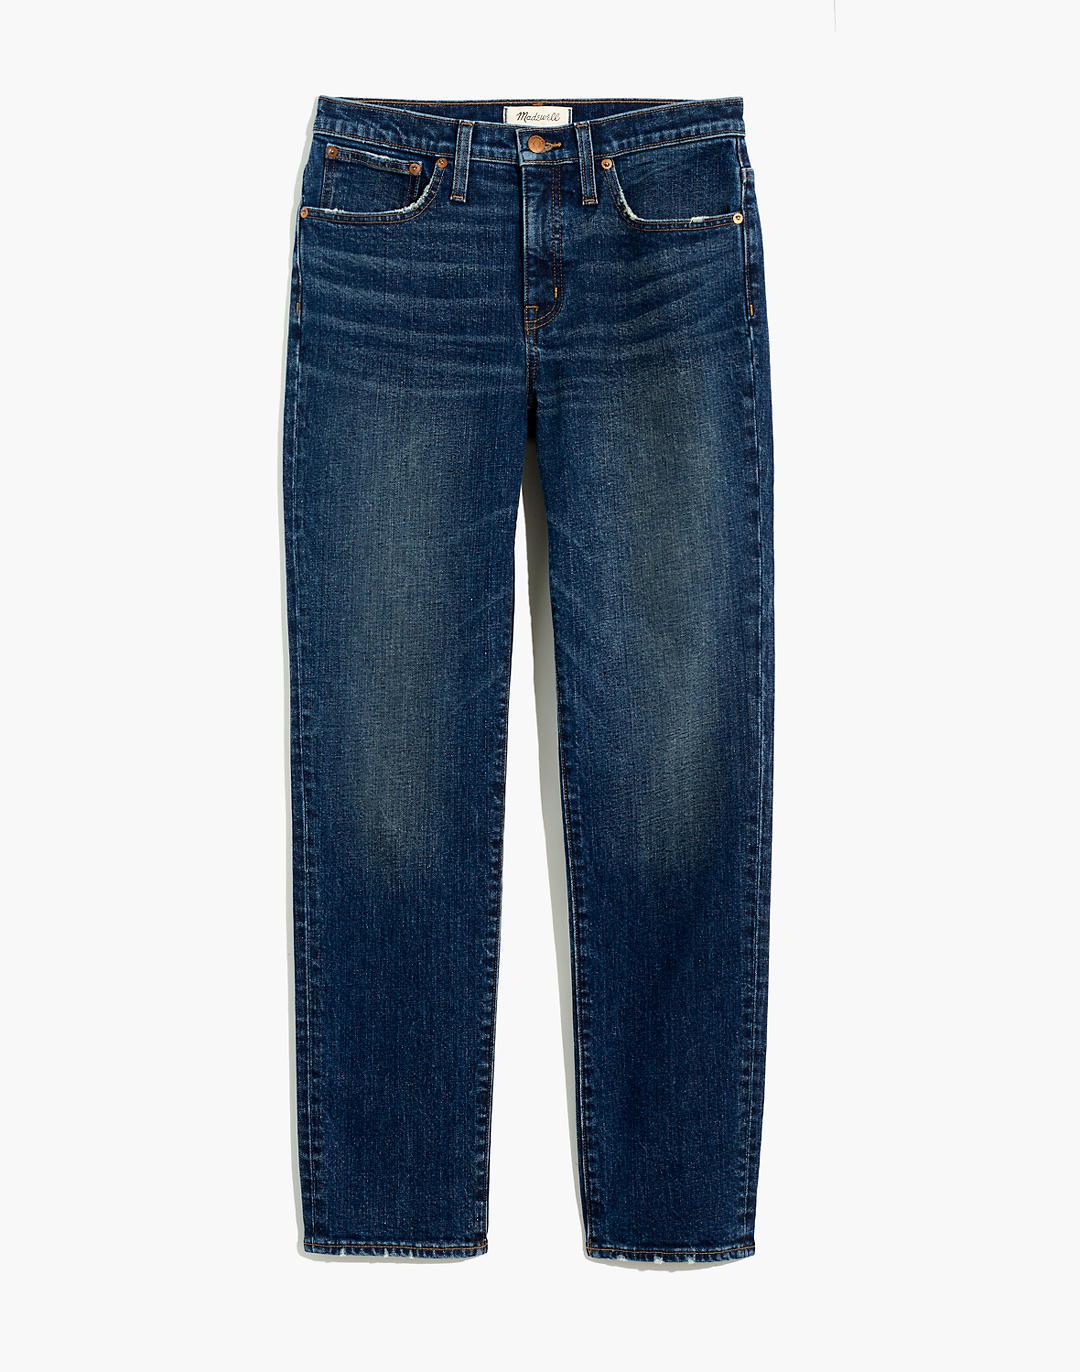 Tomboy Straight Jeans in Chaseley Wash 5